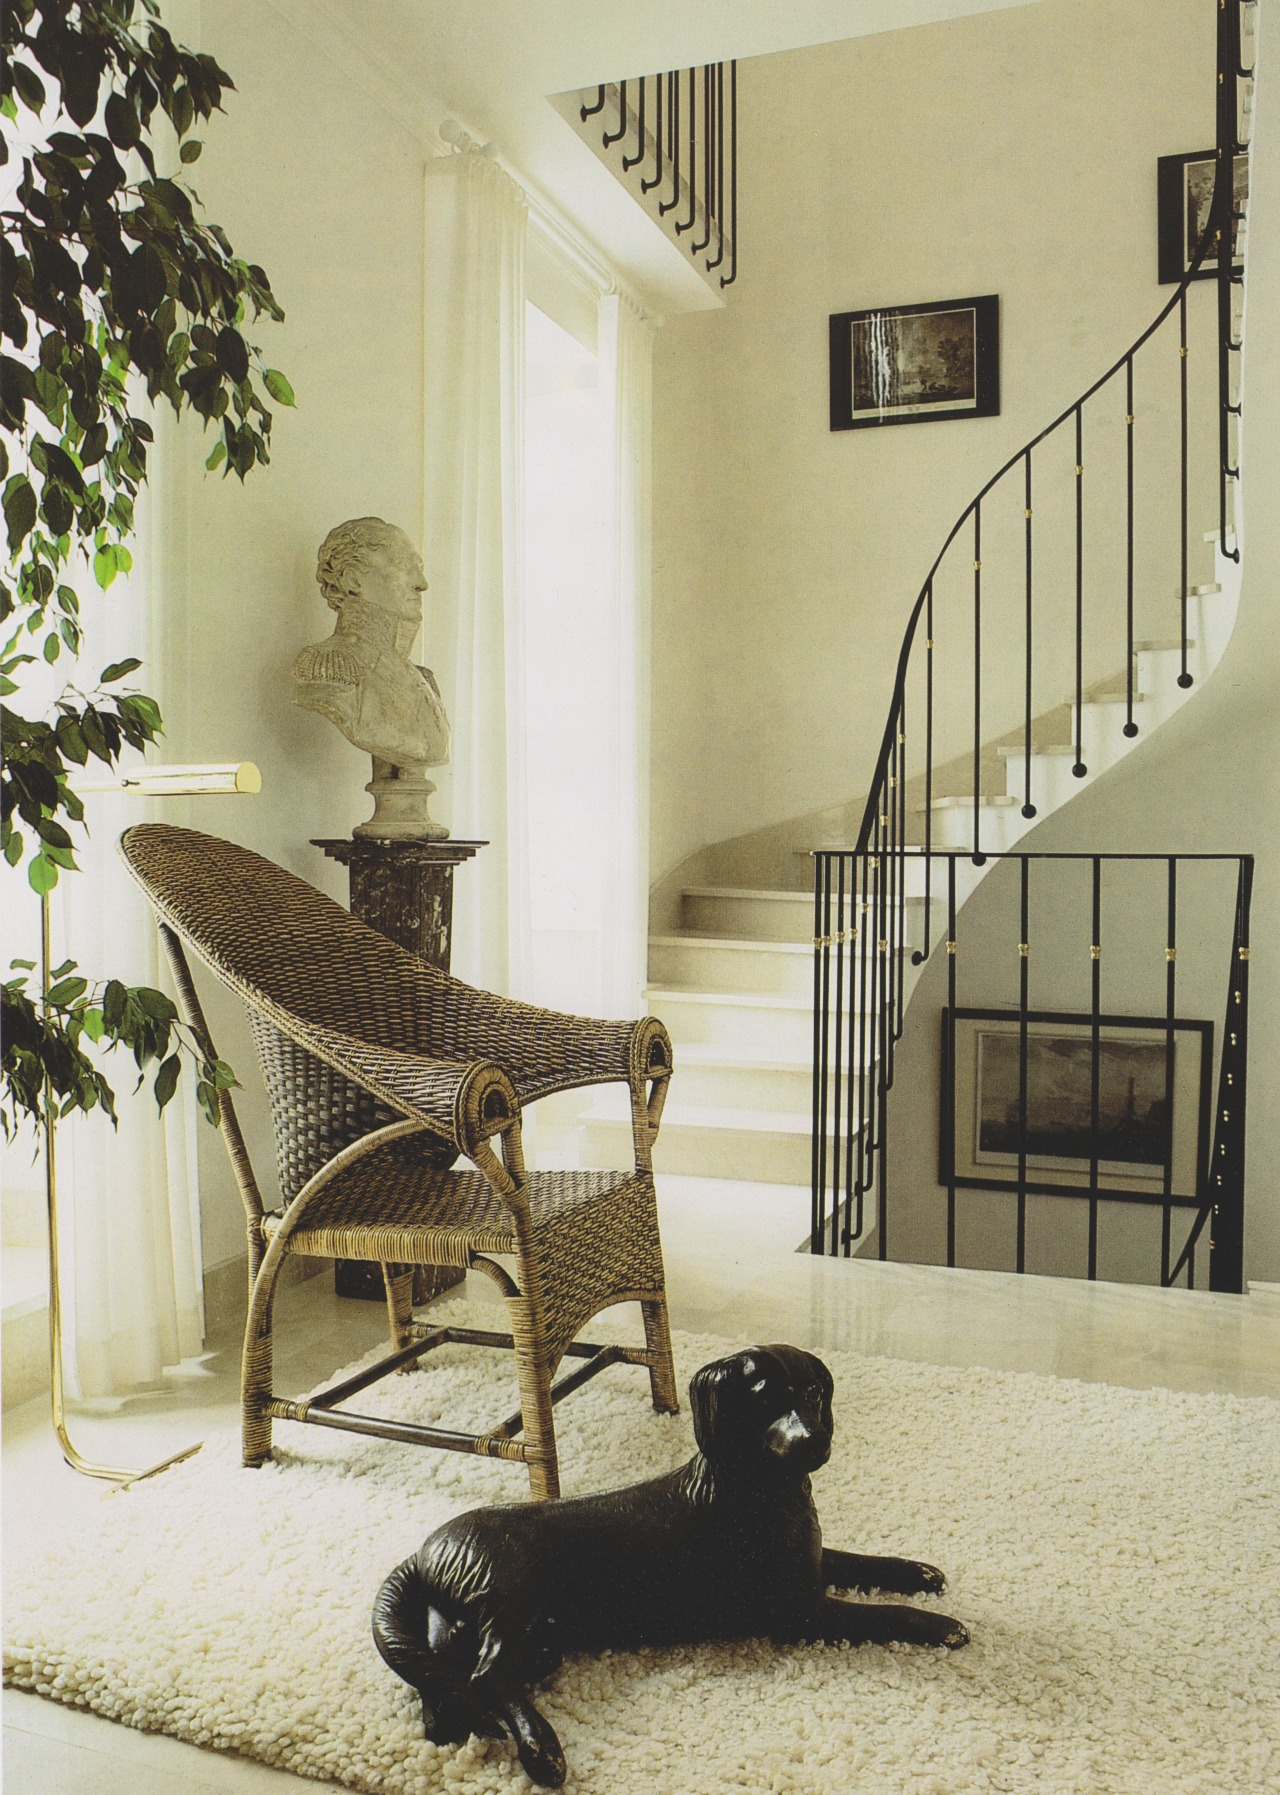 The French Touch: Decoration and Design in the Most Beautiful Homes in France, 1988 #vintage#vintage interior#1980s#interior design#home decor#apartment#staircase#iron#ballustrade#dog sculpture#wicker chair#white interior#house plants#marble bust#French#modern#classical#style#home